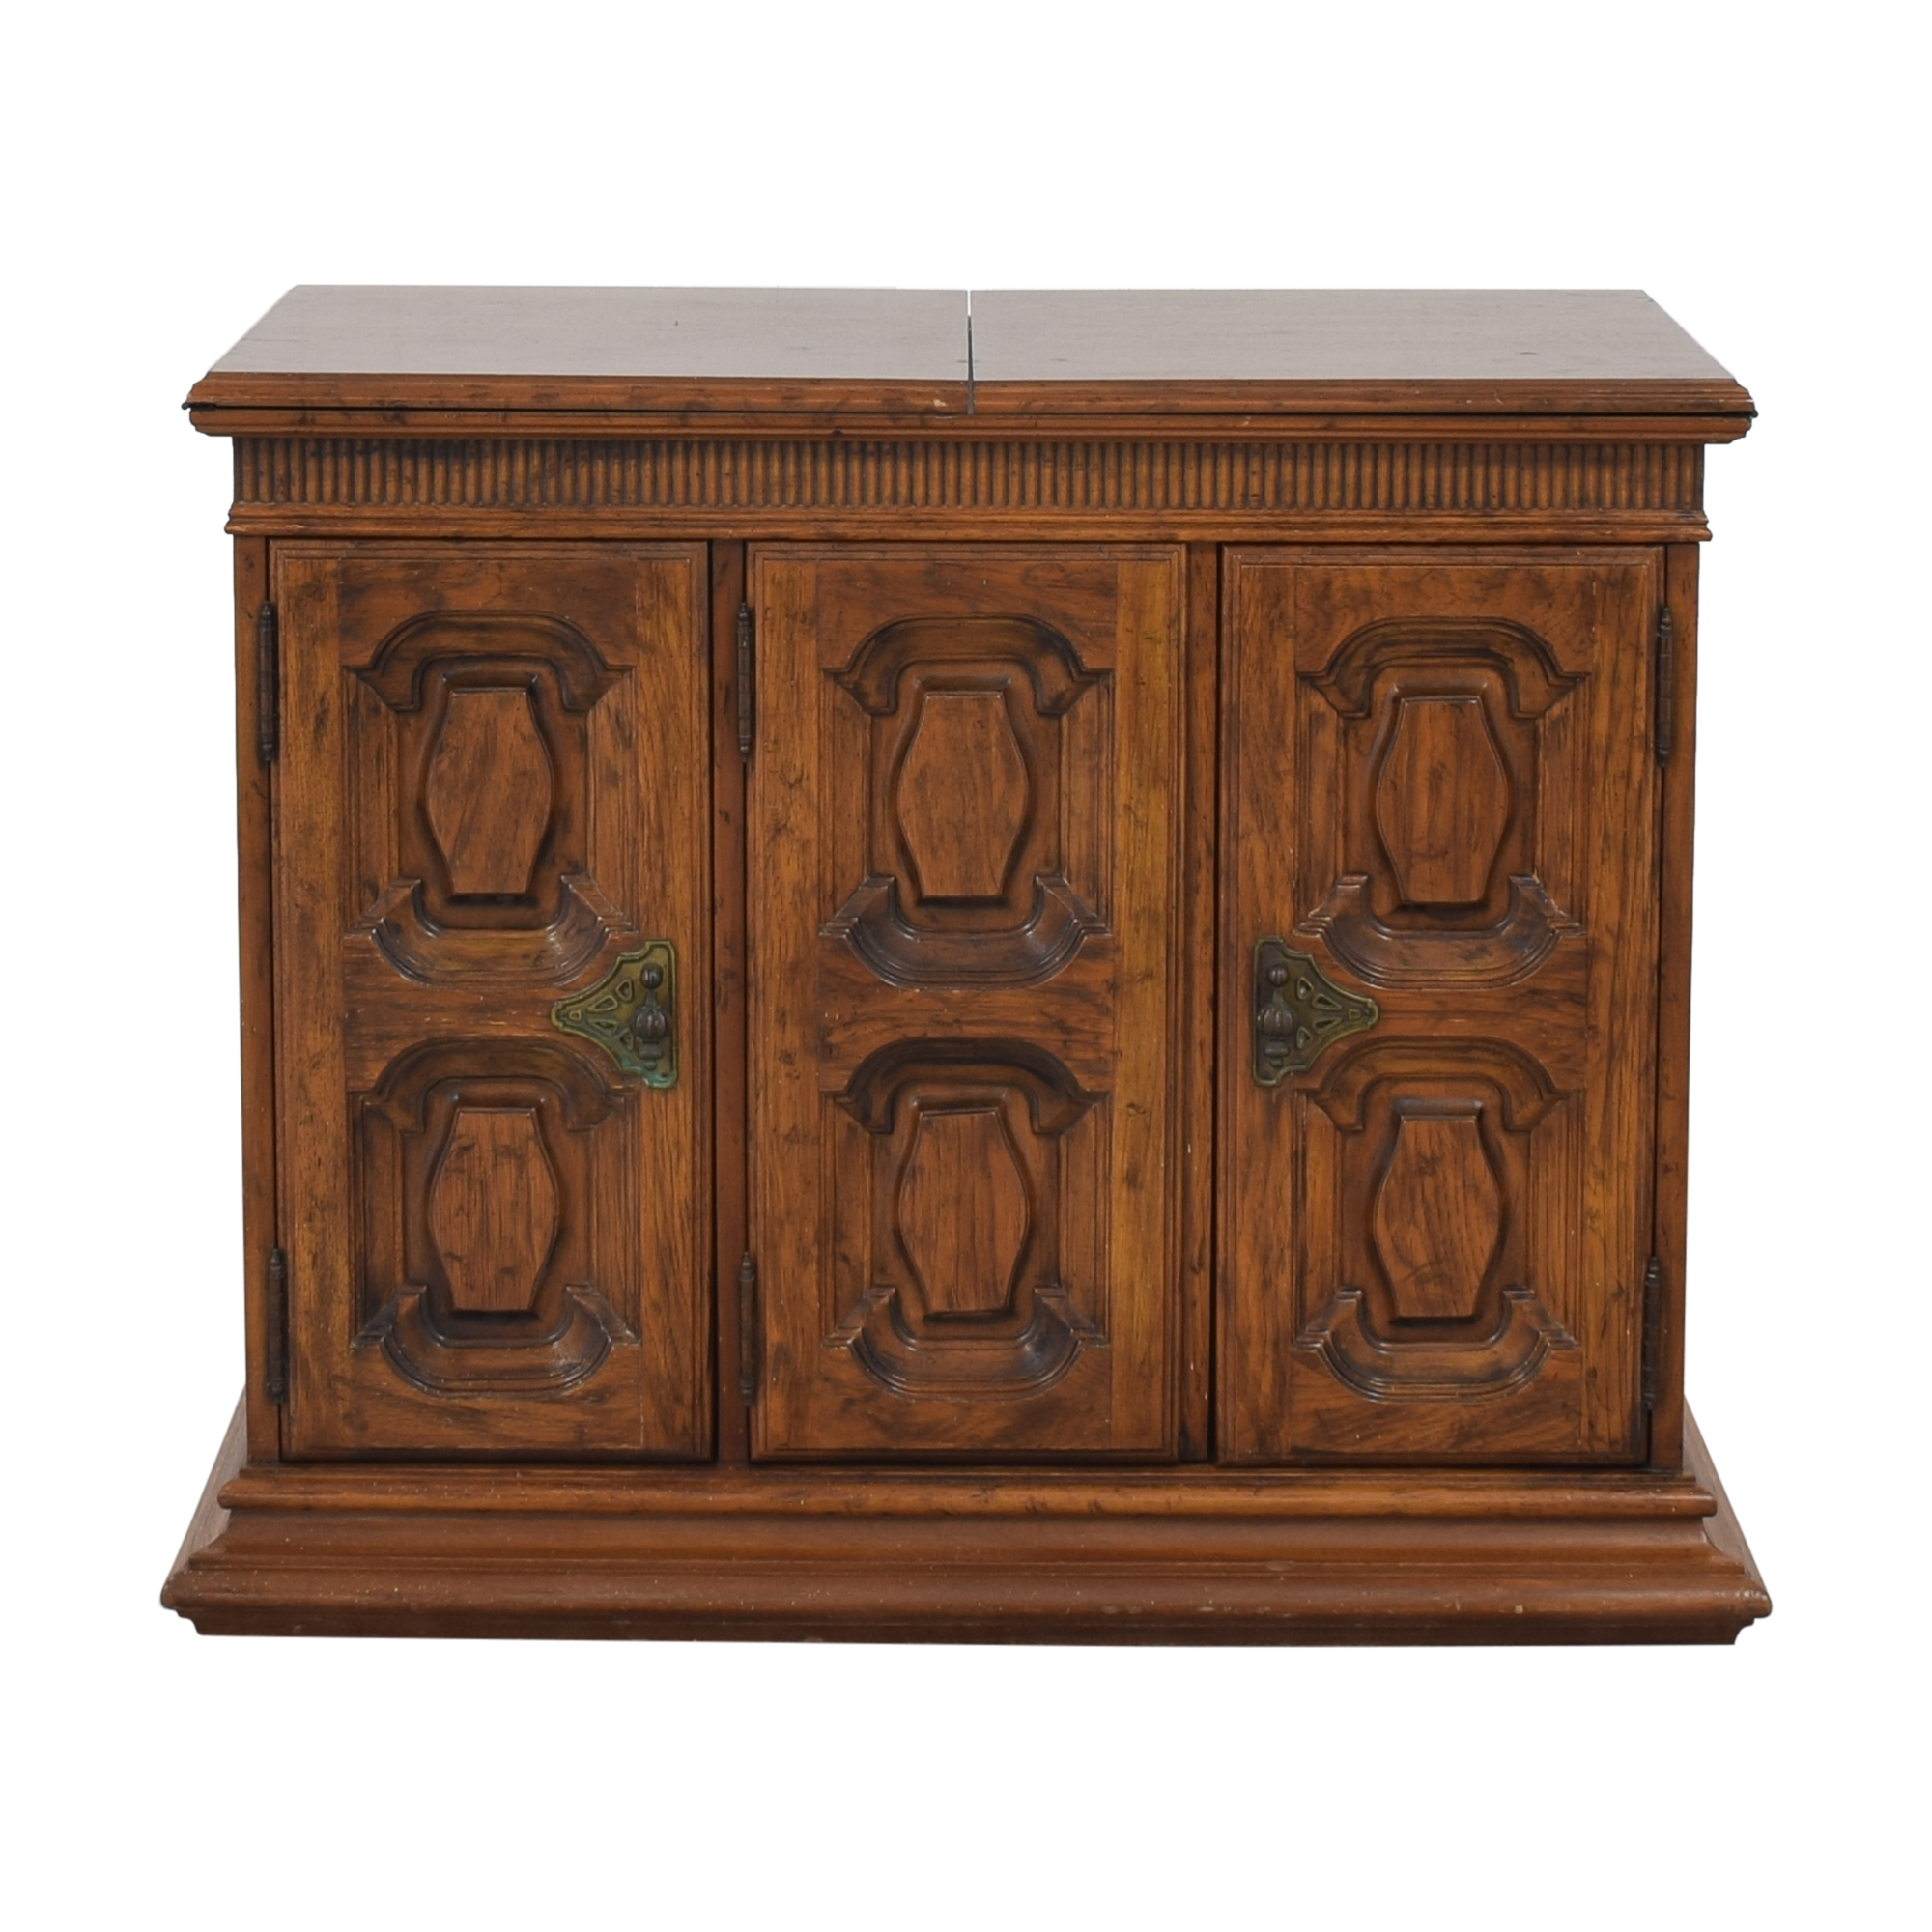 Heritage Heritage Extending Bar Cabinet for sale